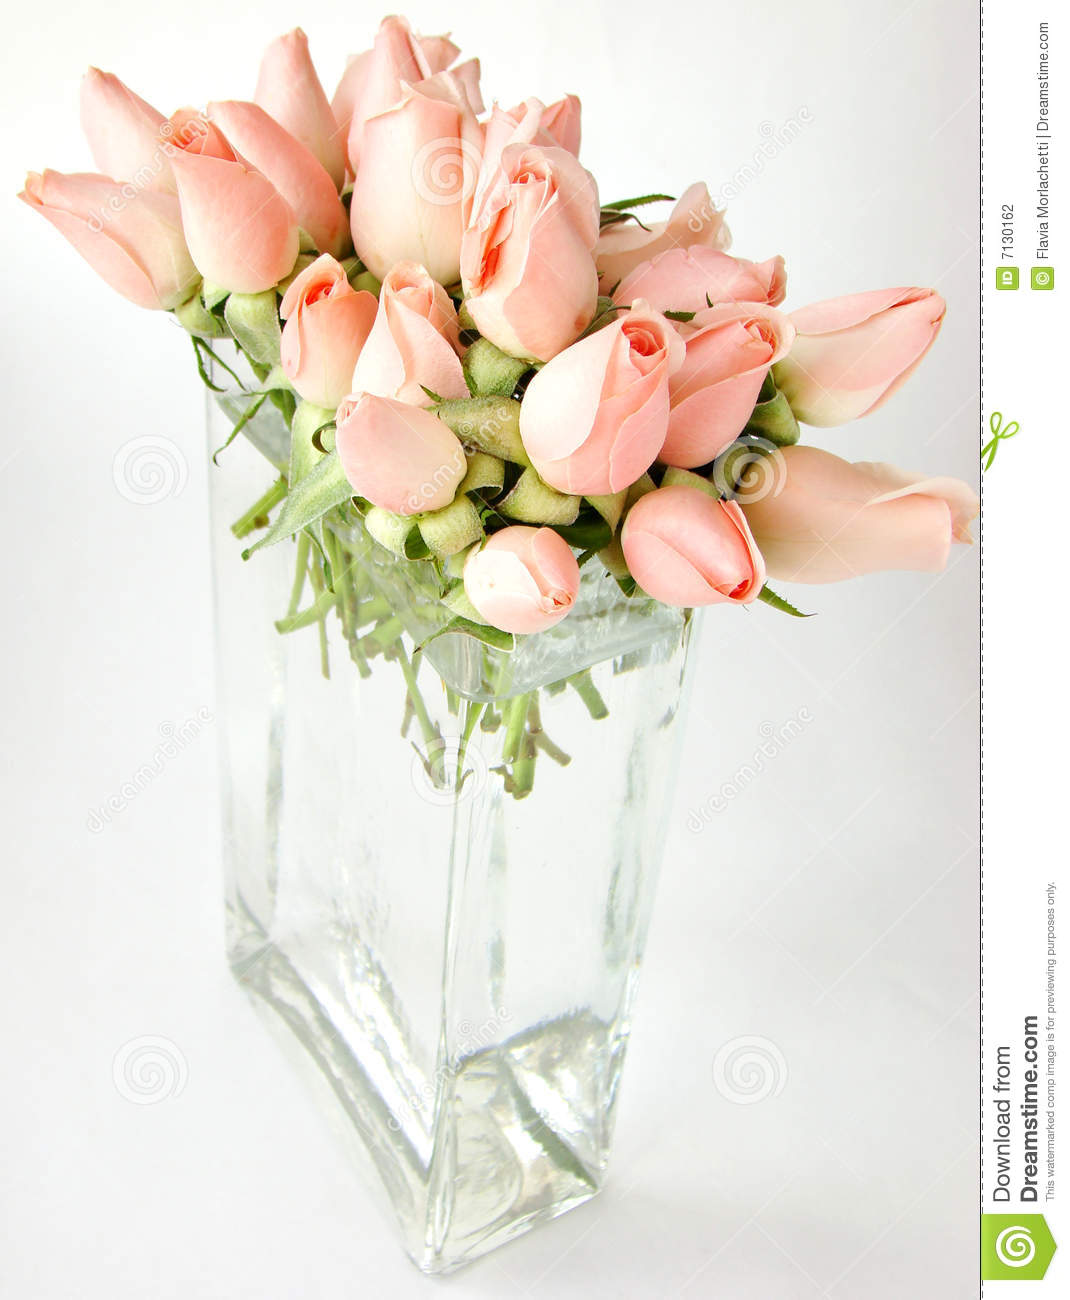 Petit bouquet rose de roses sur le vase photographie stock - Petit bouquet de table ...